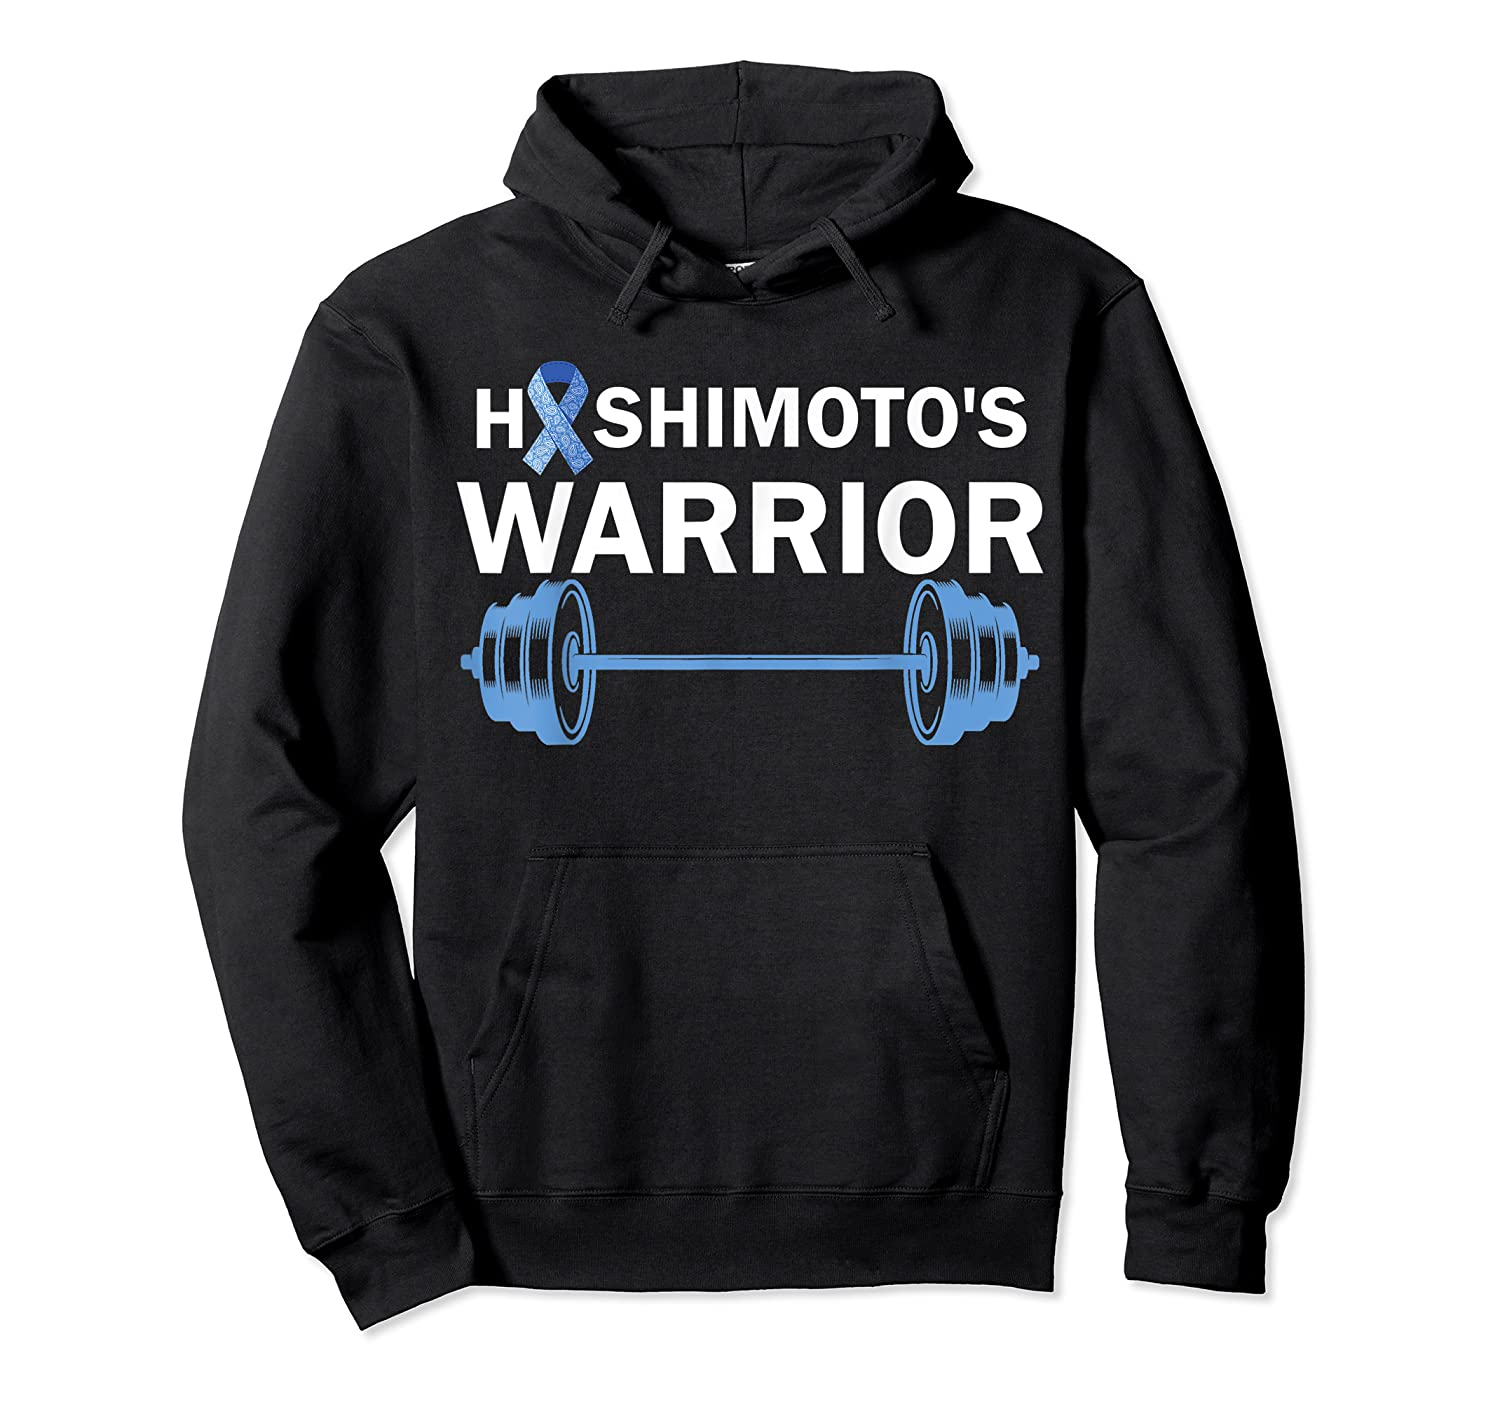 Hashimoto's Warrior Thyroid Disease Support Shirts Unisex Pullover Hoodie